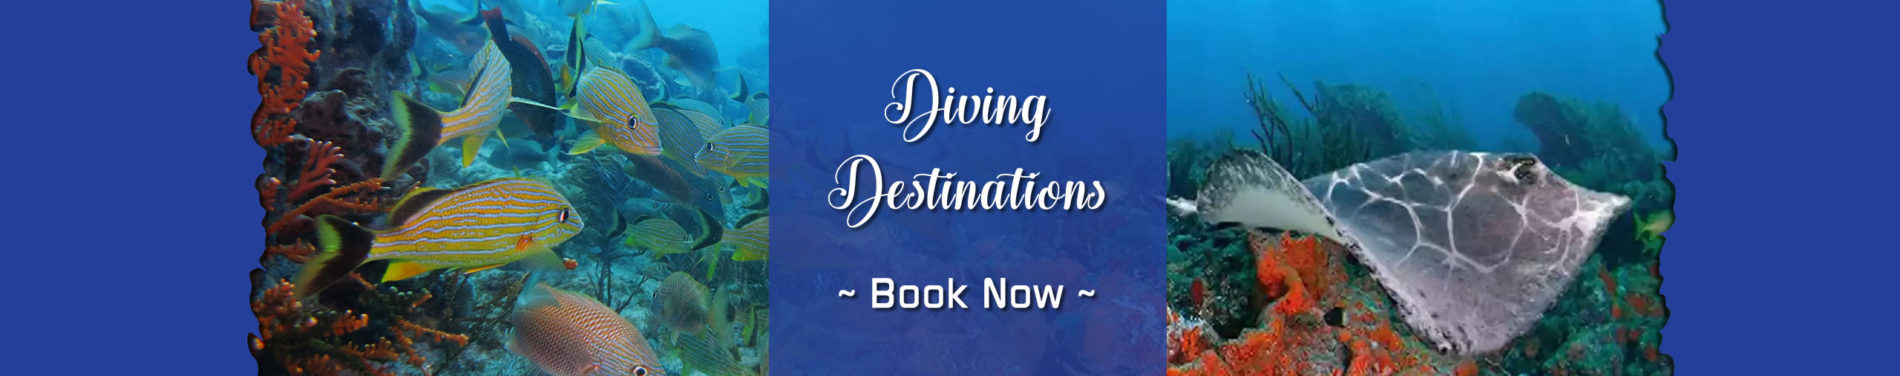 YKnot Key West Charters - Diving Destinations